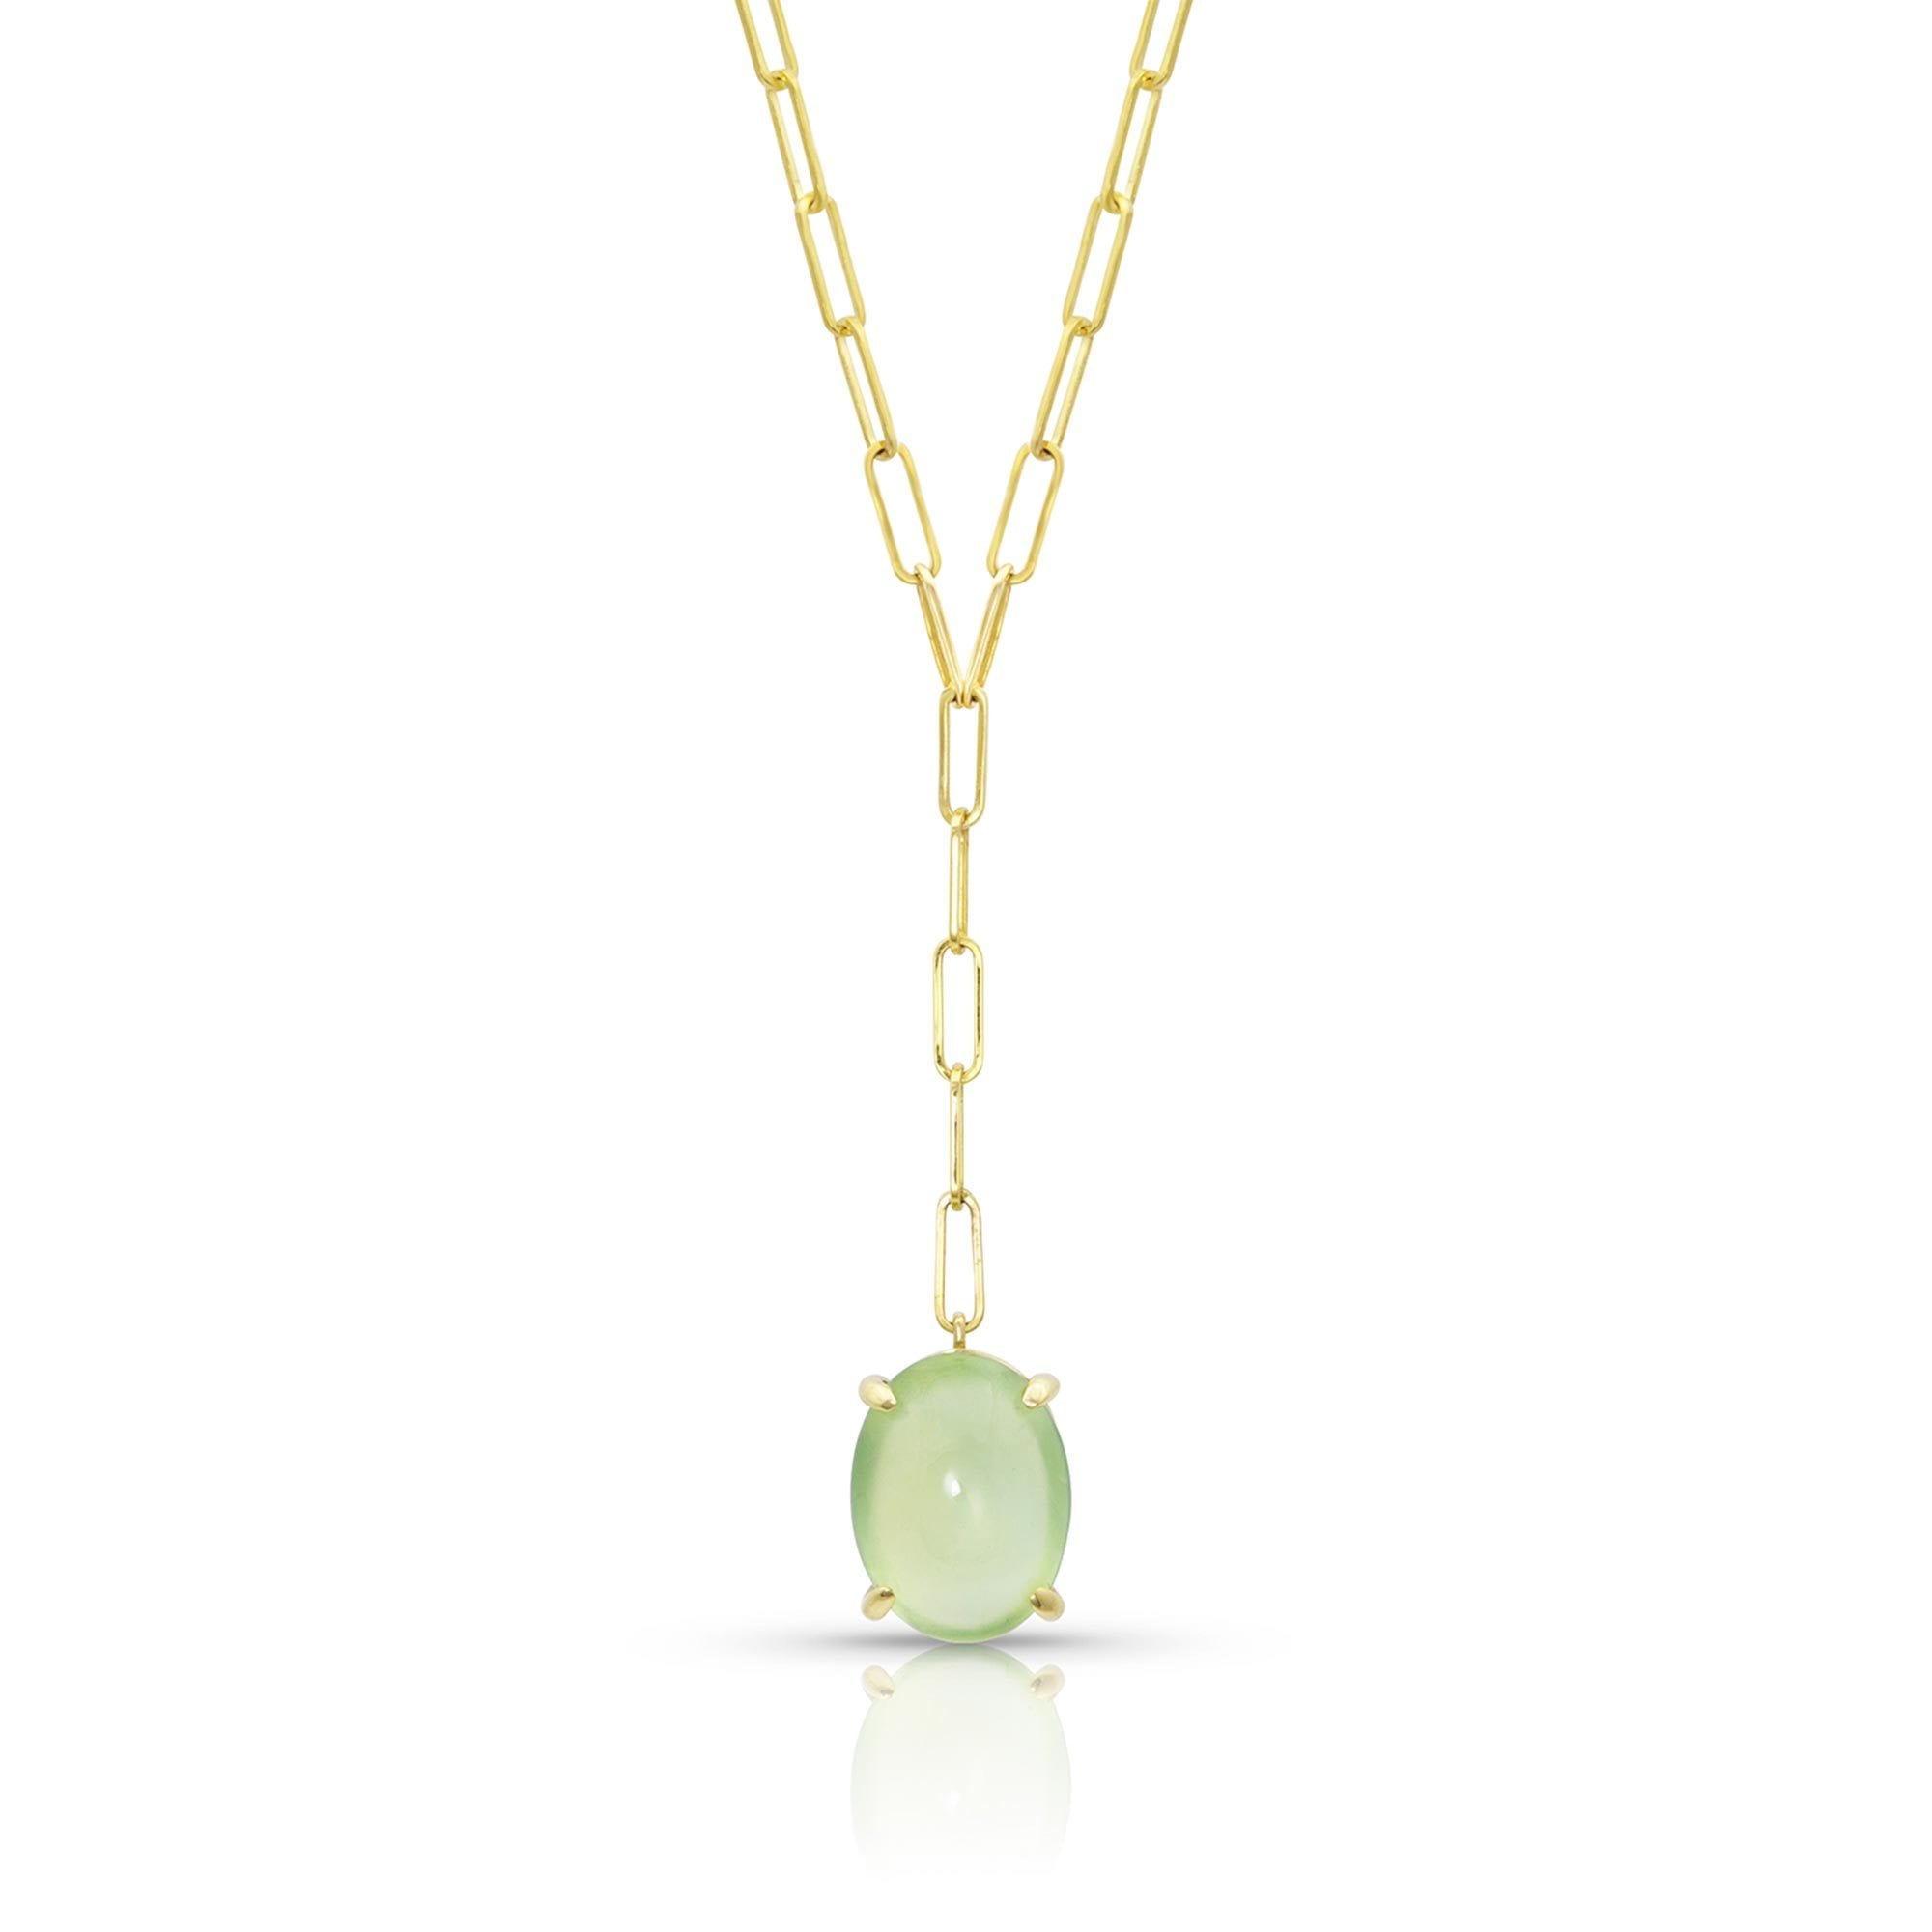 Vincents Fine Jewelry | M. Spalten | Gemdrop Prehnite Lariat Necklace